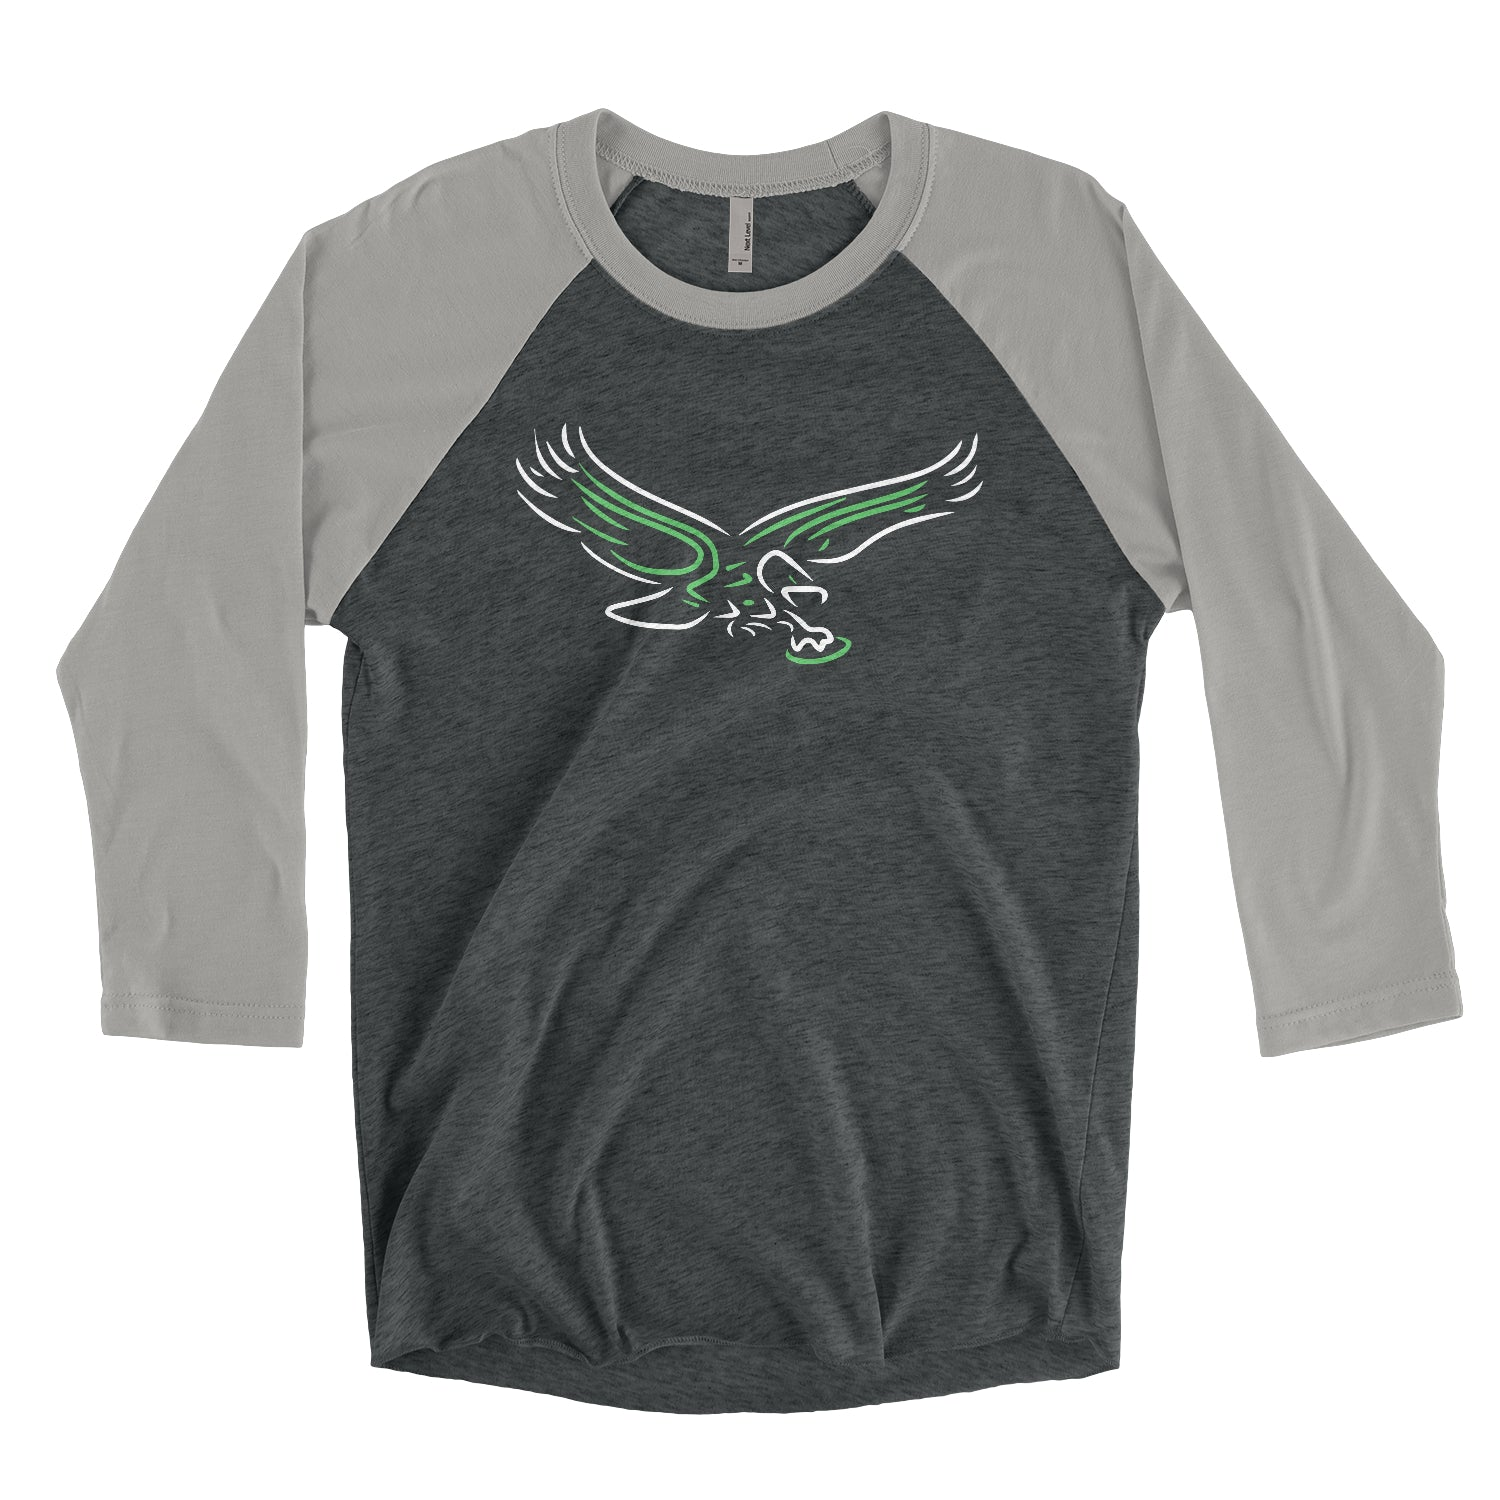 Retro Neon Bird Unisex Tri-Blend 3/4 Sleeve Baseball Raglan T-Shirt